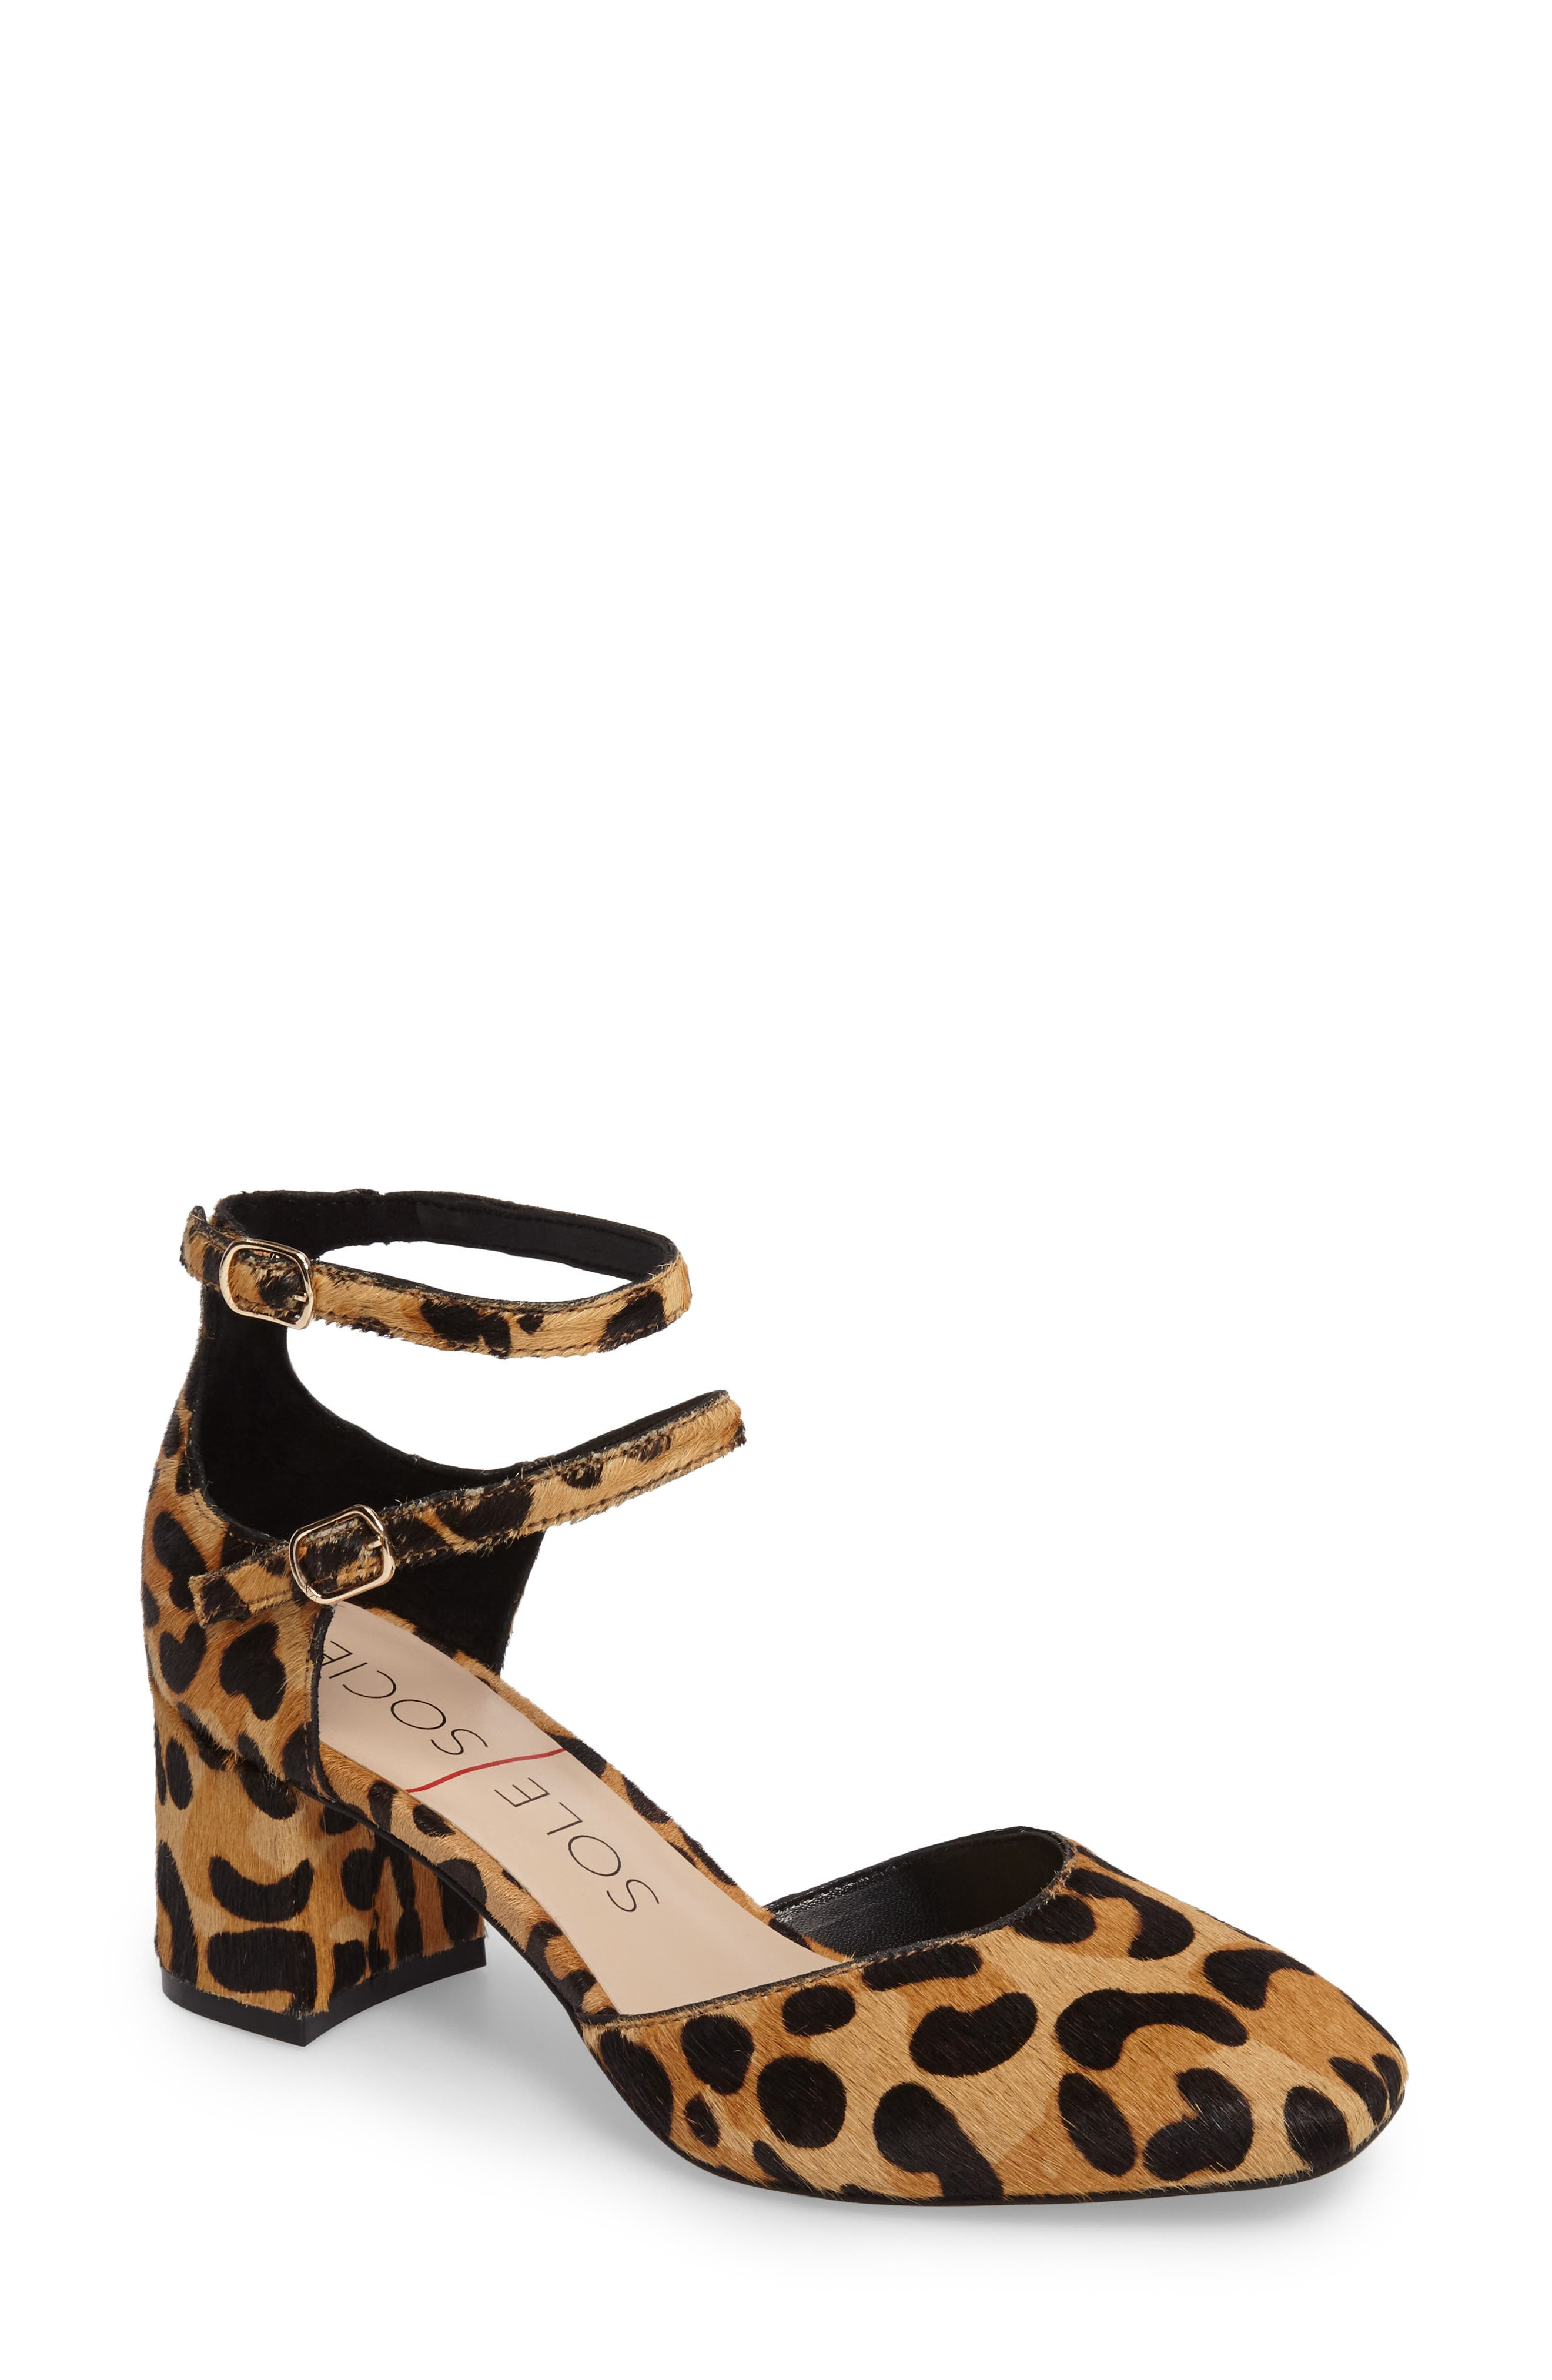 Selby Double Strap Pump,                         Main,                         color, Leopard Haircalf